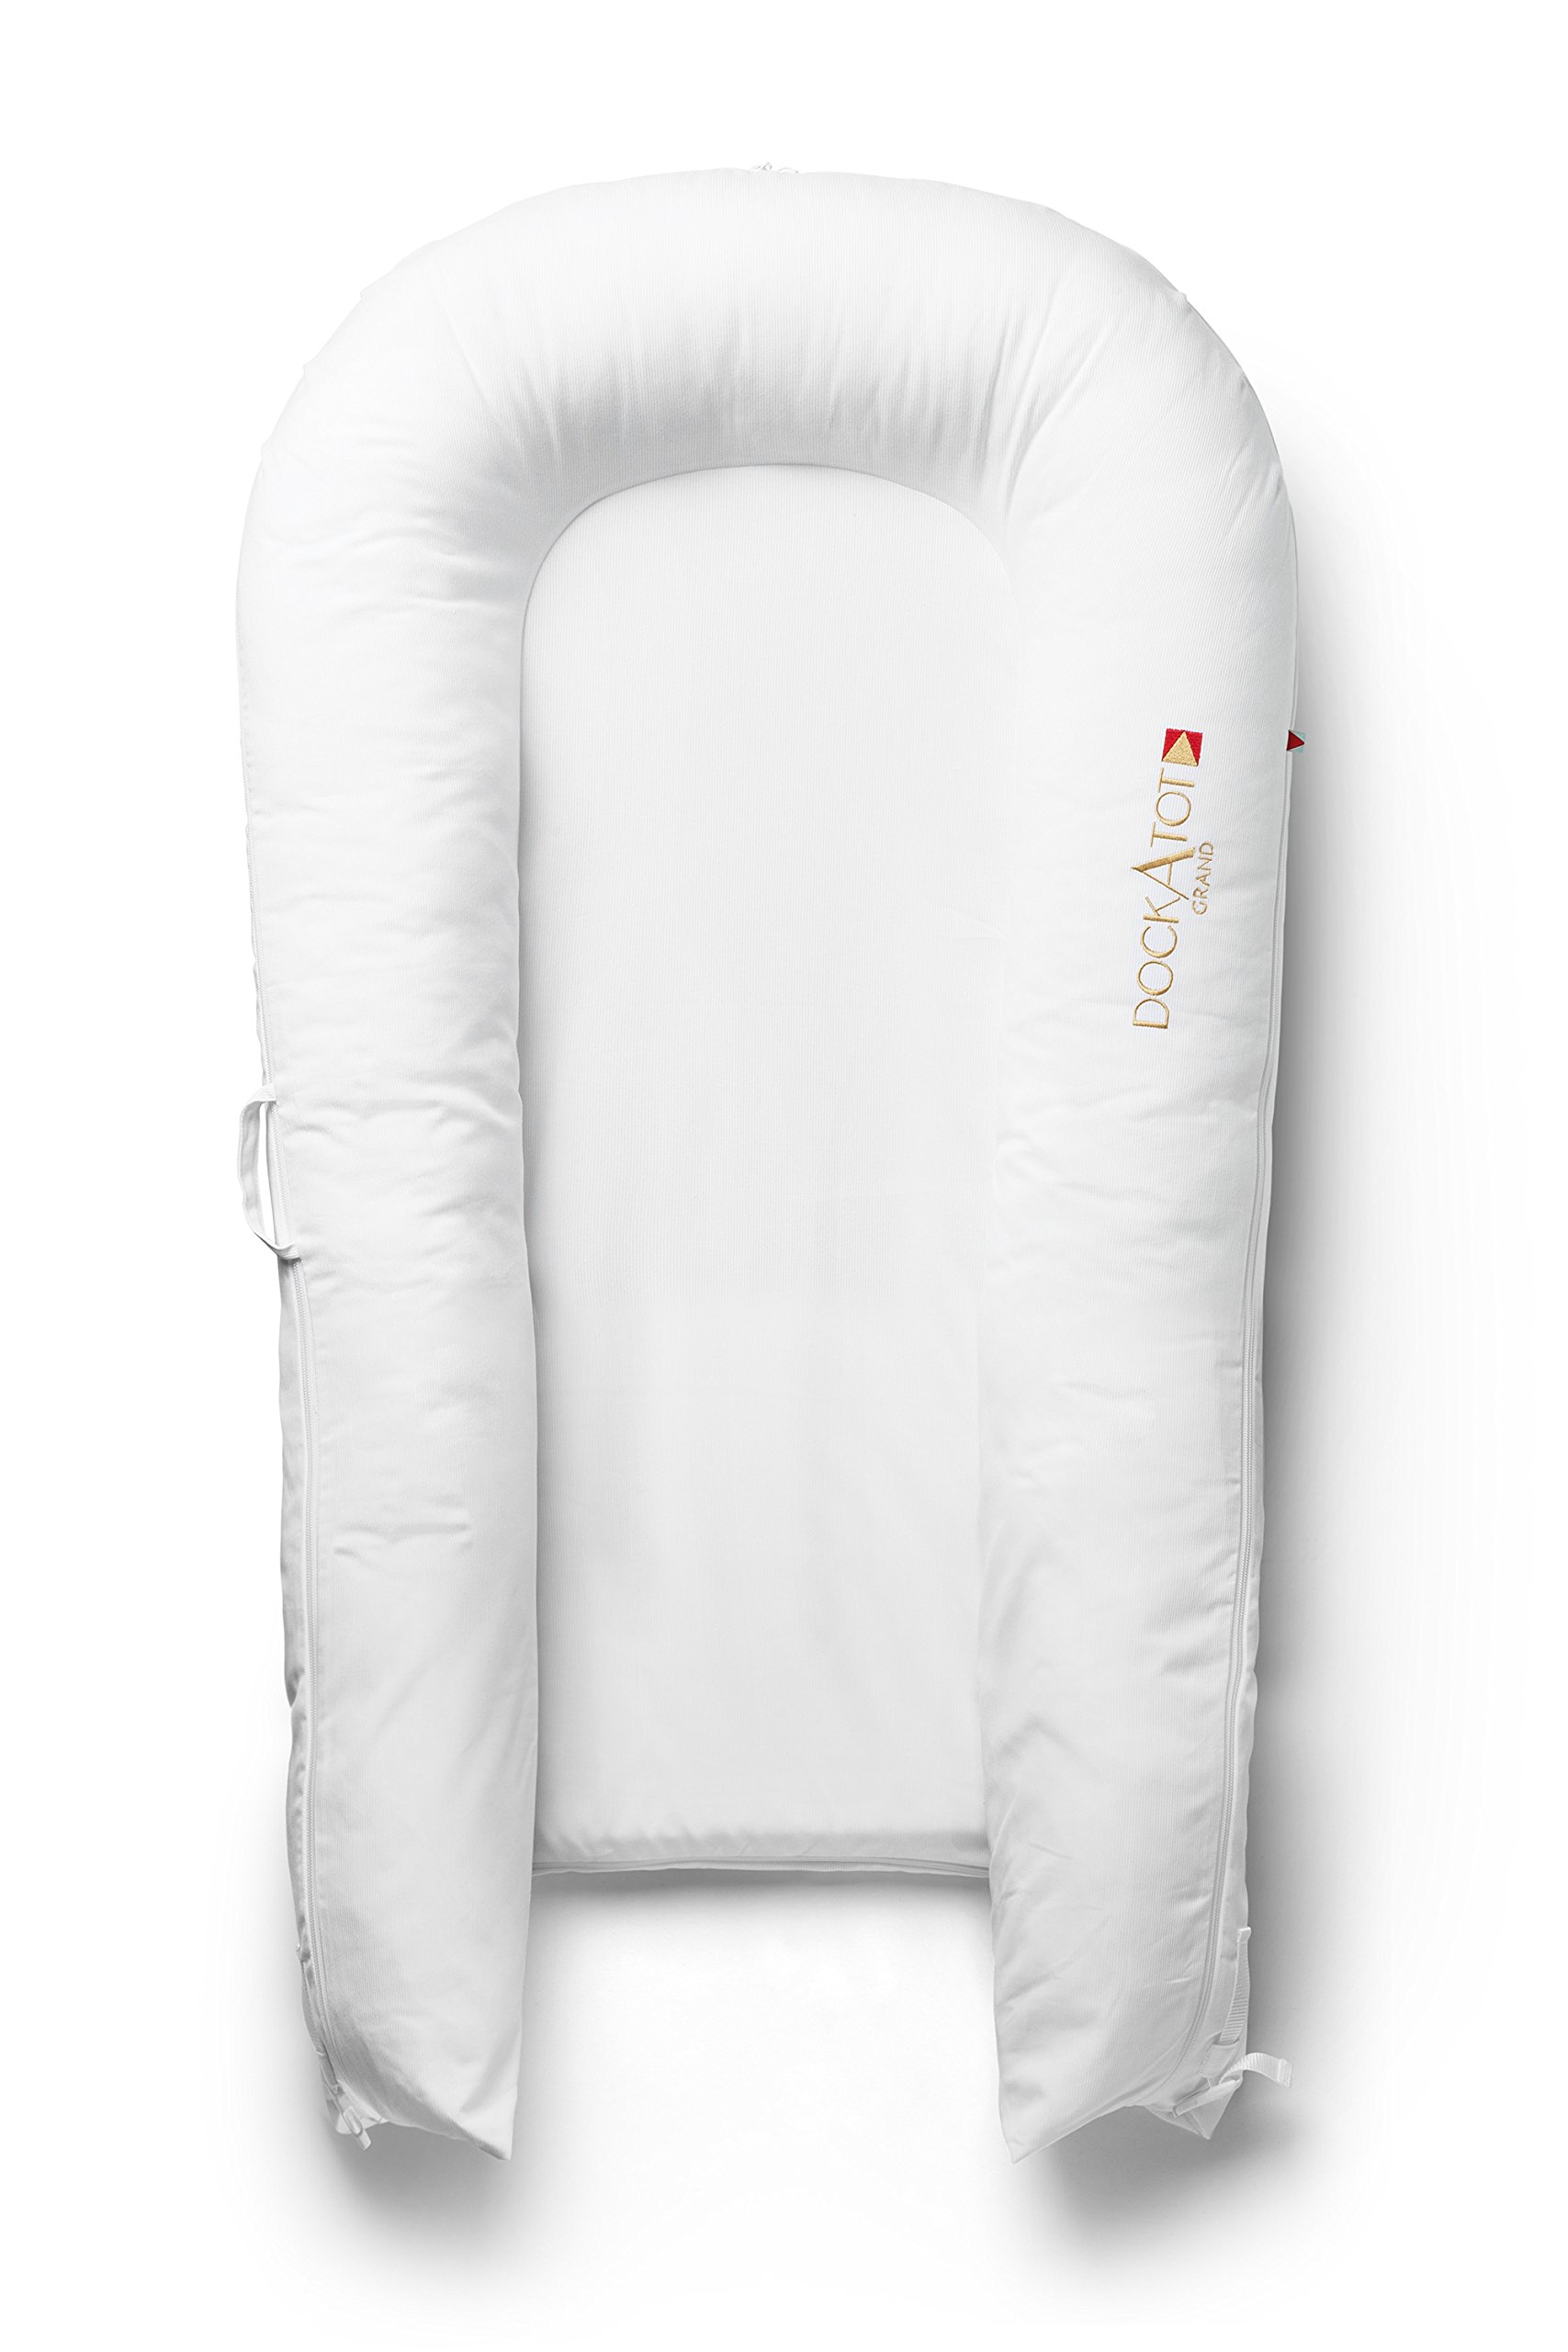 DockATot Grand Dock (Pristine White) - Perfect for Cuddling, Lounging, Co Sleeping & Crib to Bed Transition - Breathable & Hypoallergenic - Lightweight for Easy Travel - Suitable from 9-36 months